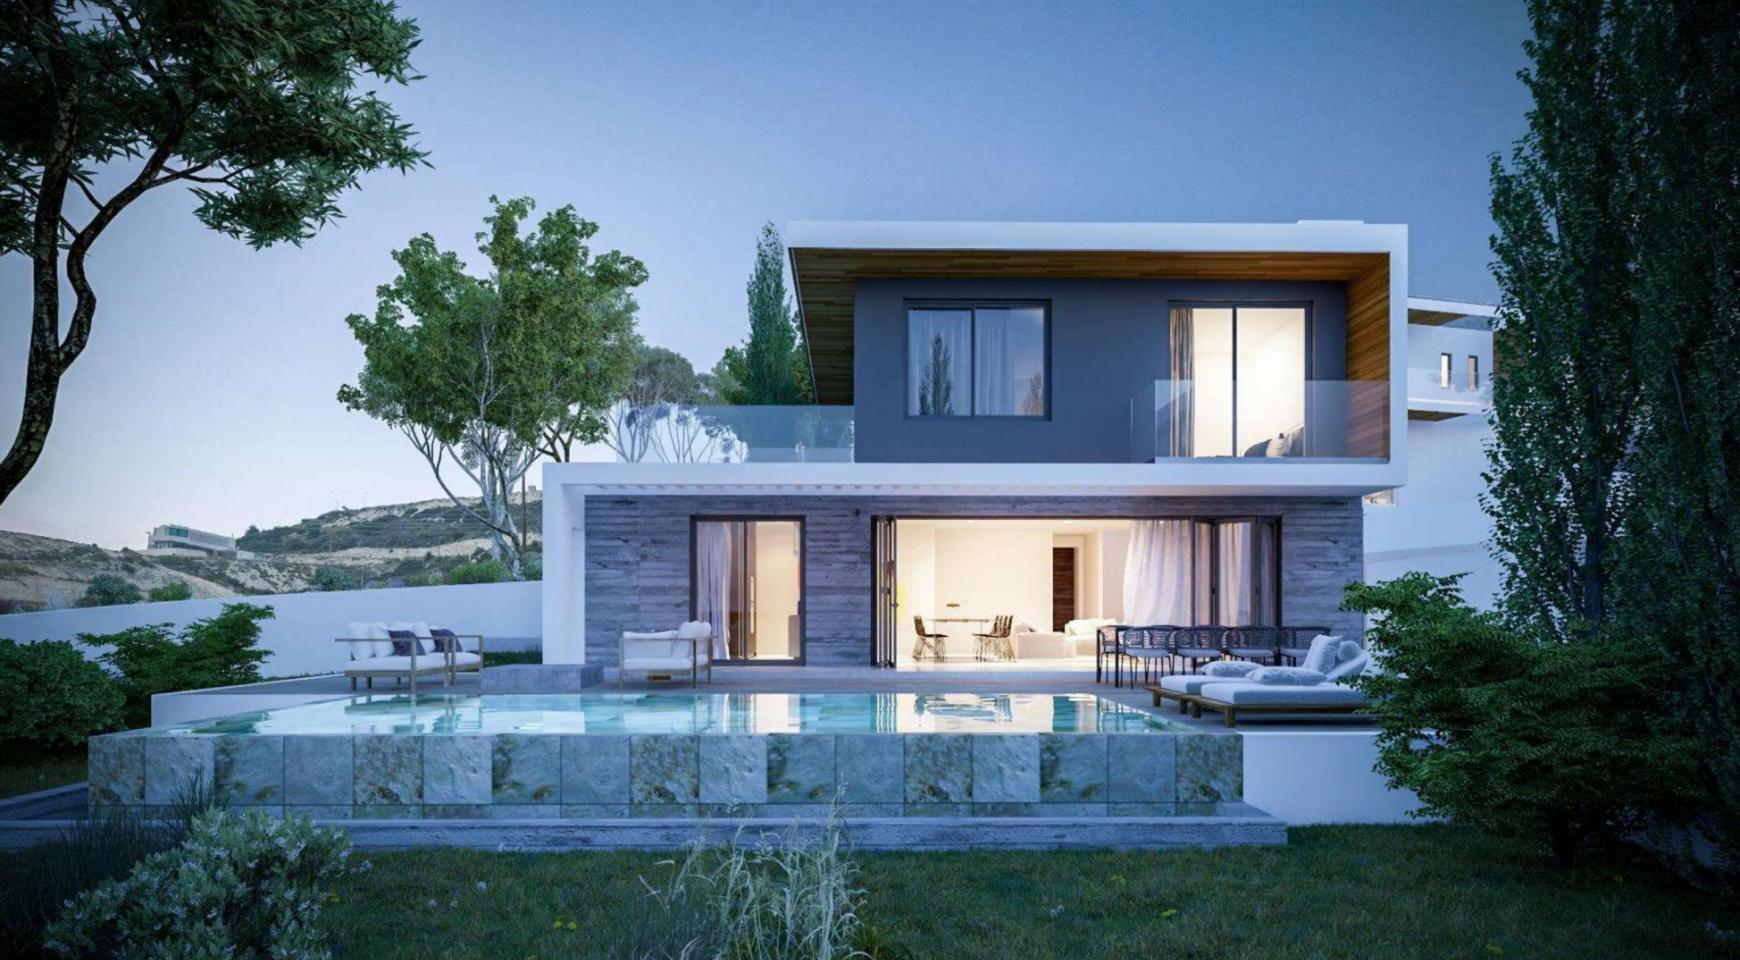 4 Bedroom Villa within a New Project in Agios Tychonas Area - 1